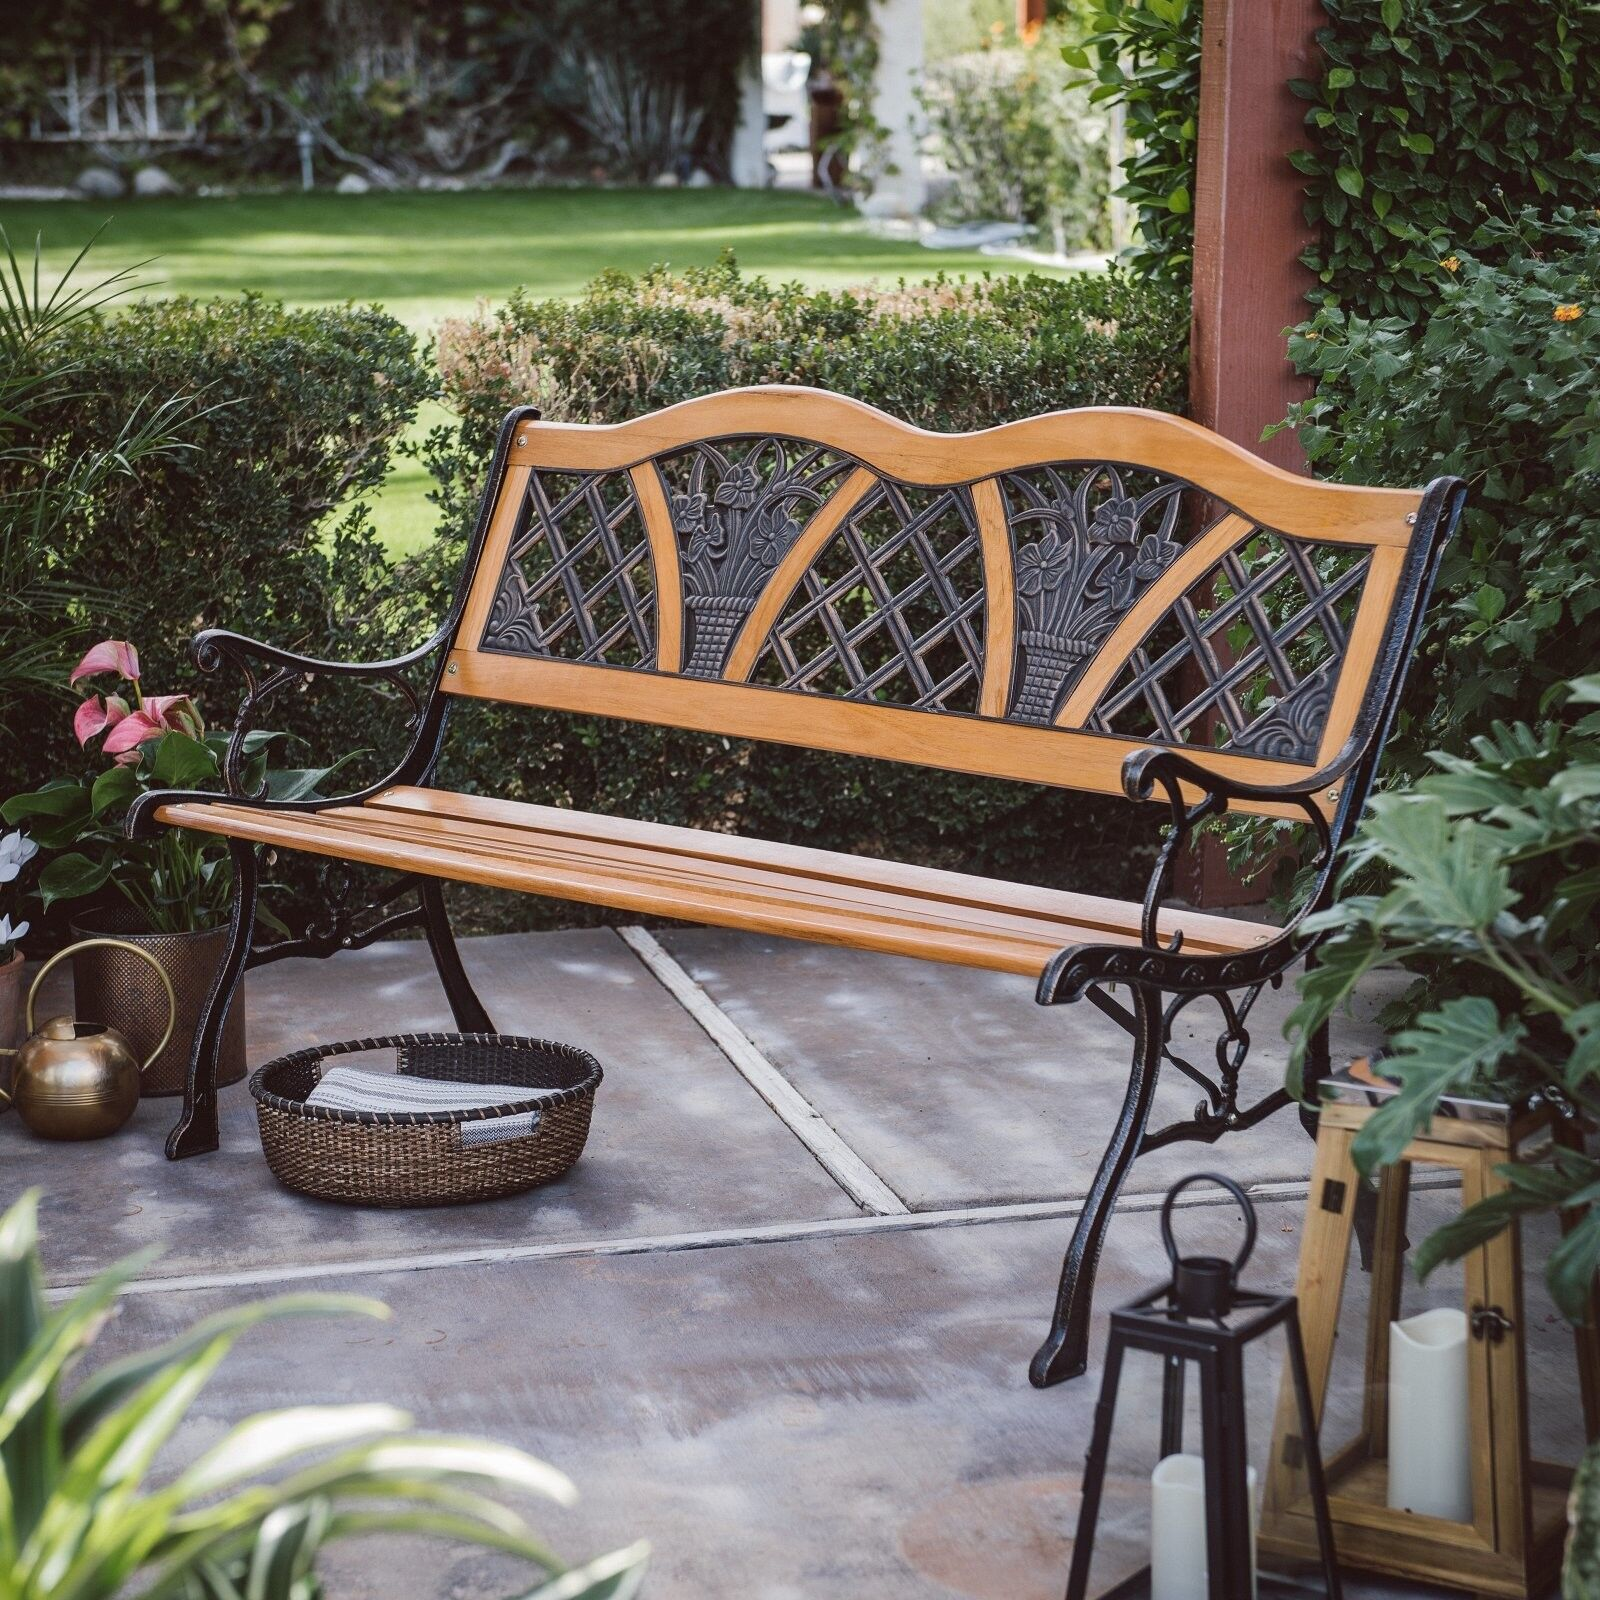 Sensational Details About Wooden Metal Double Garden Bench Antique Vintage Curve Back Outdoor Yard Patio Caraccident5 Cool Chair Designs And Ideas Caraccident5Info